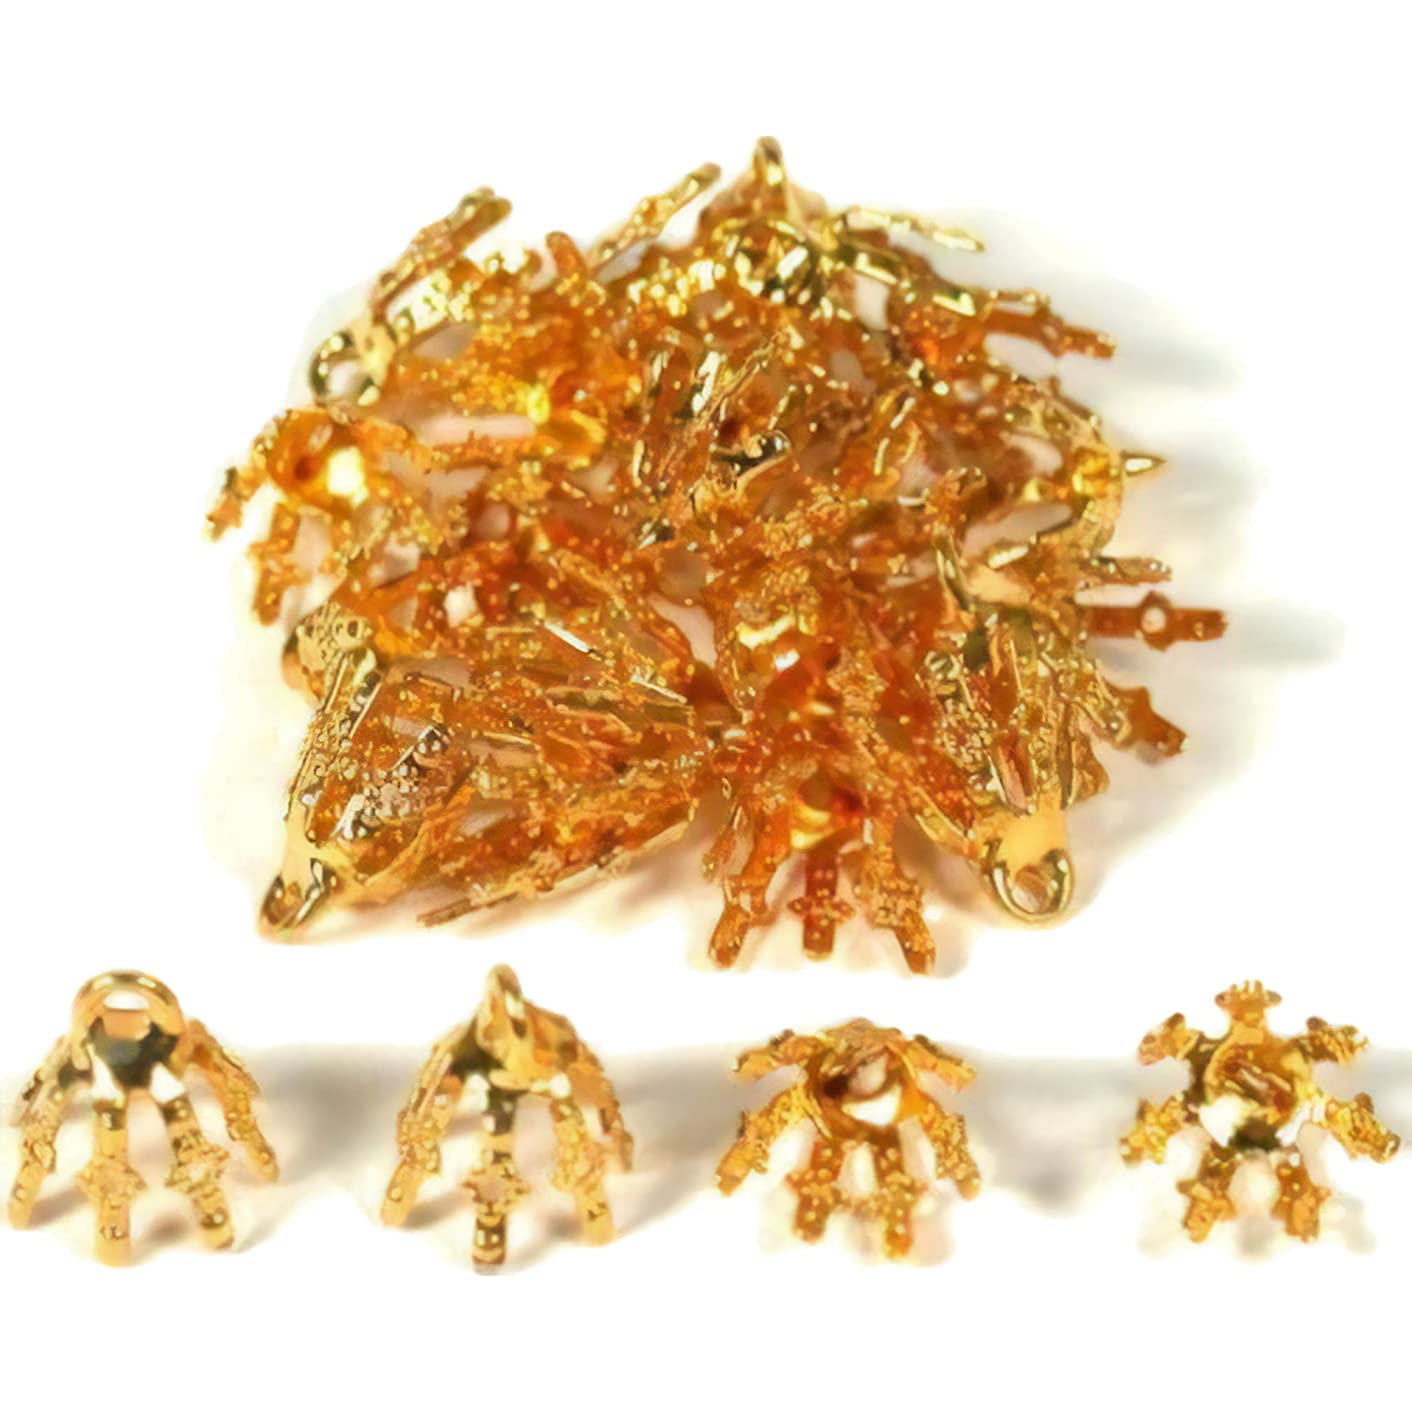 20 Bead Caps Gold Plated Necklace Chain Charm Bails